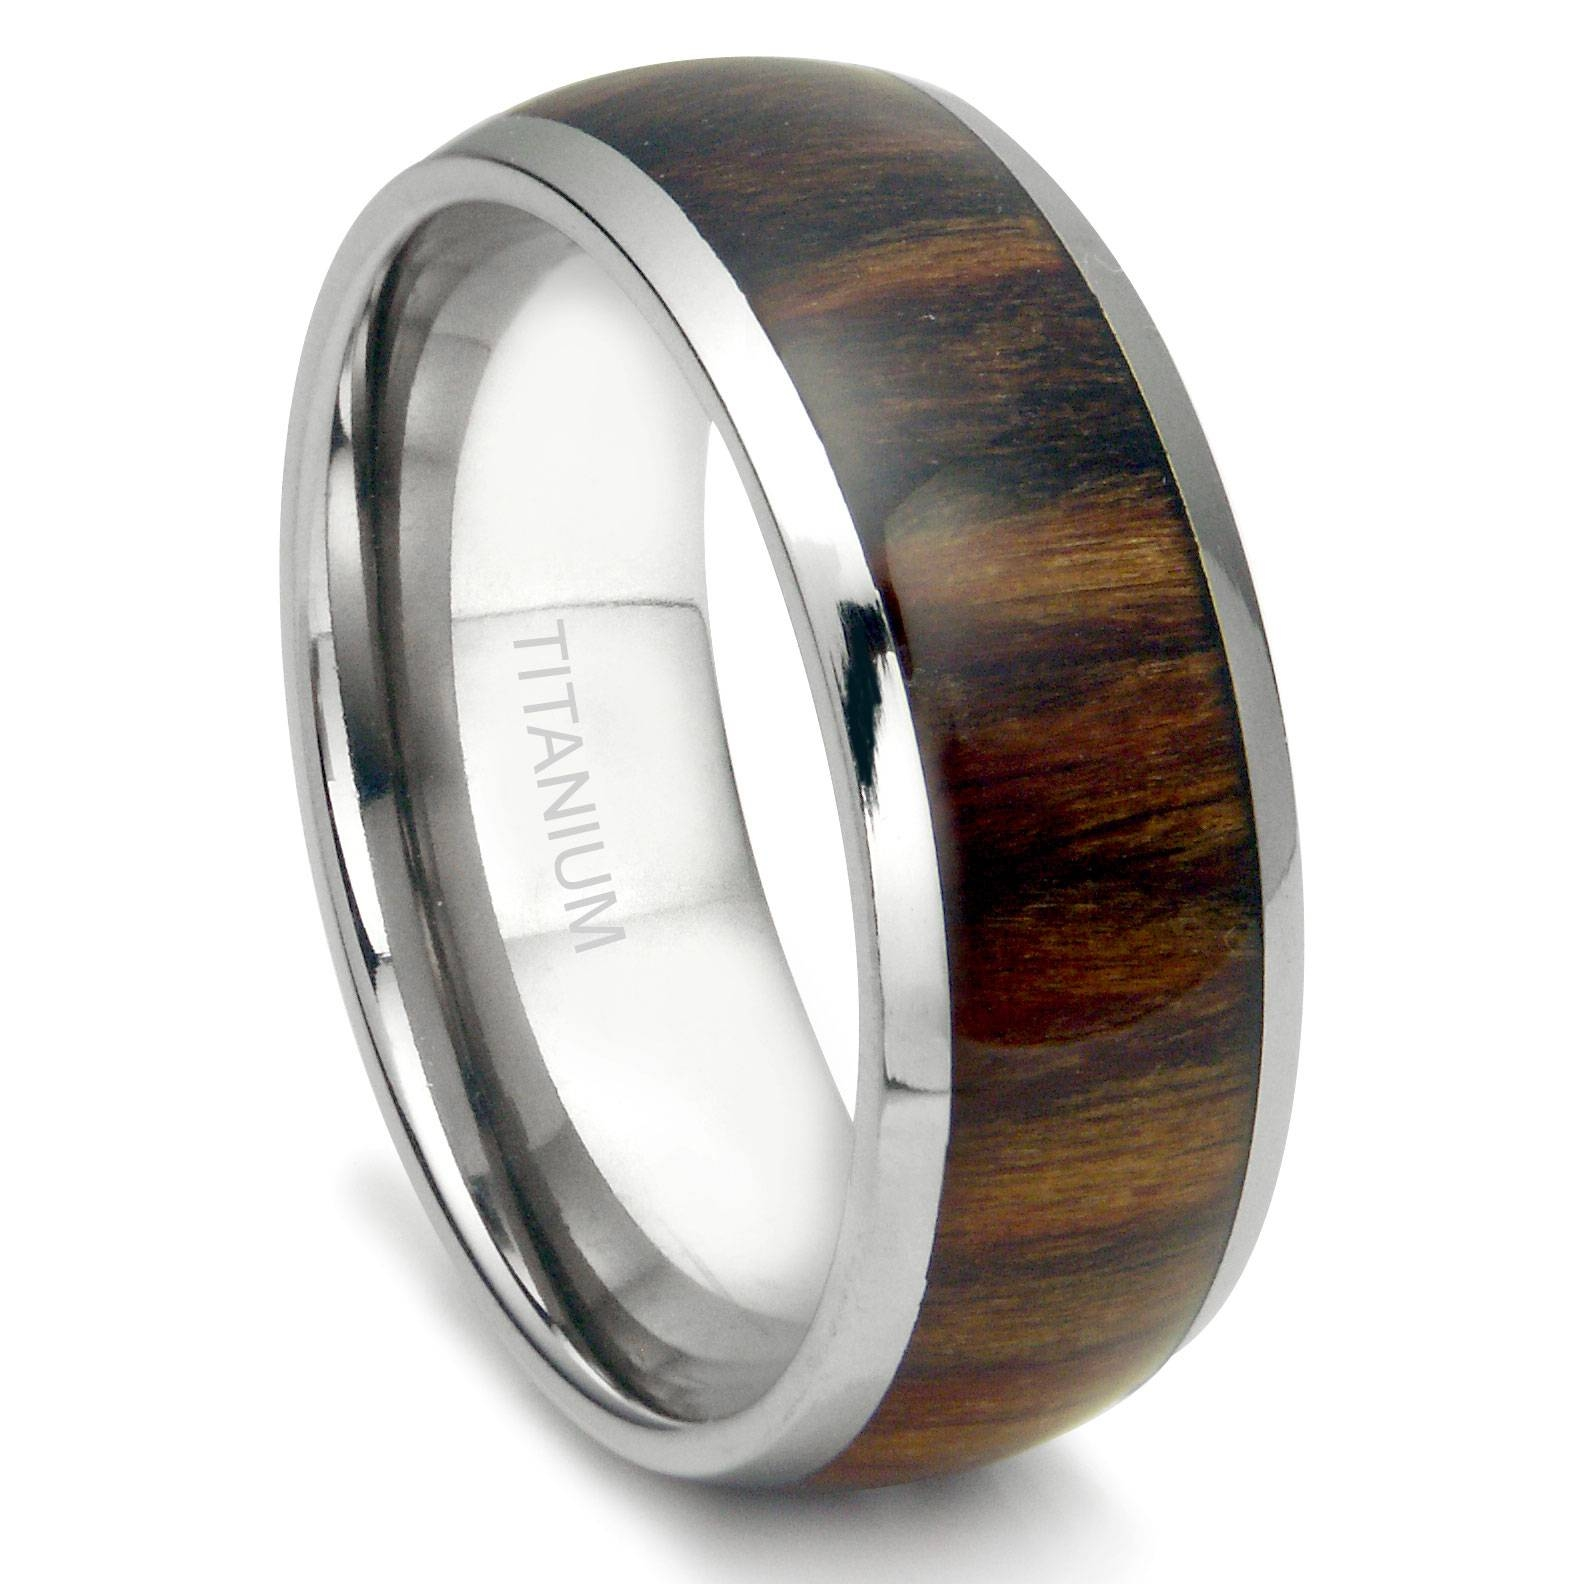 Titanium 8Mm Domed Santos Rosewood Inlay Wedding Band Ring With Regard To Titanium Wedding Bands For Men (View 11 of 15)